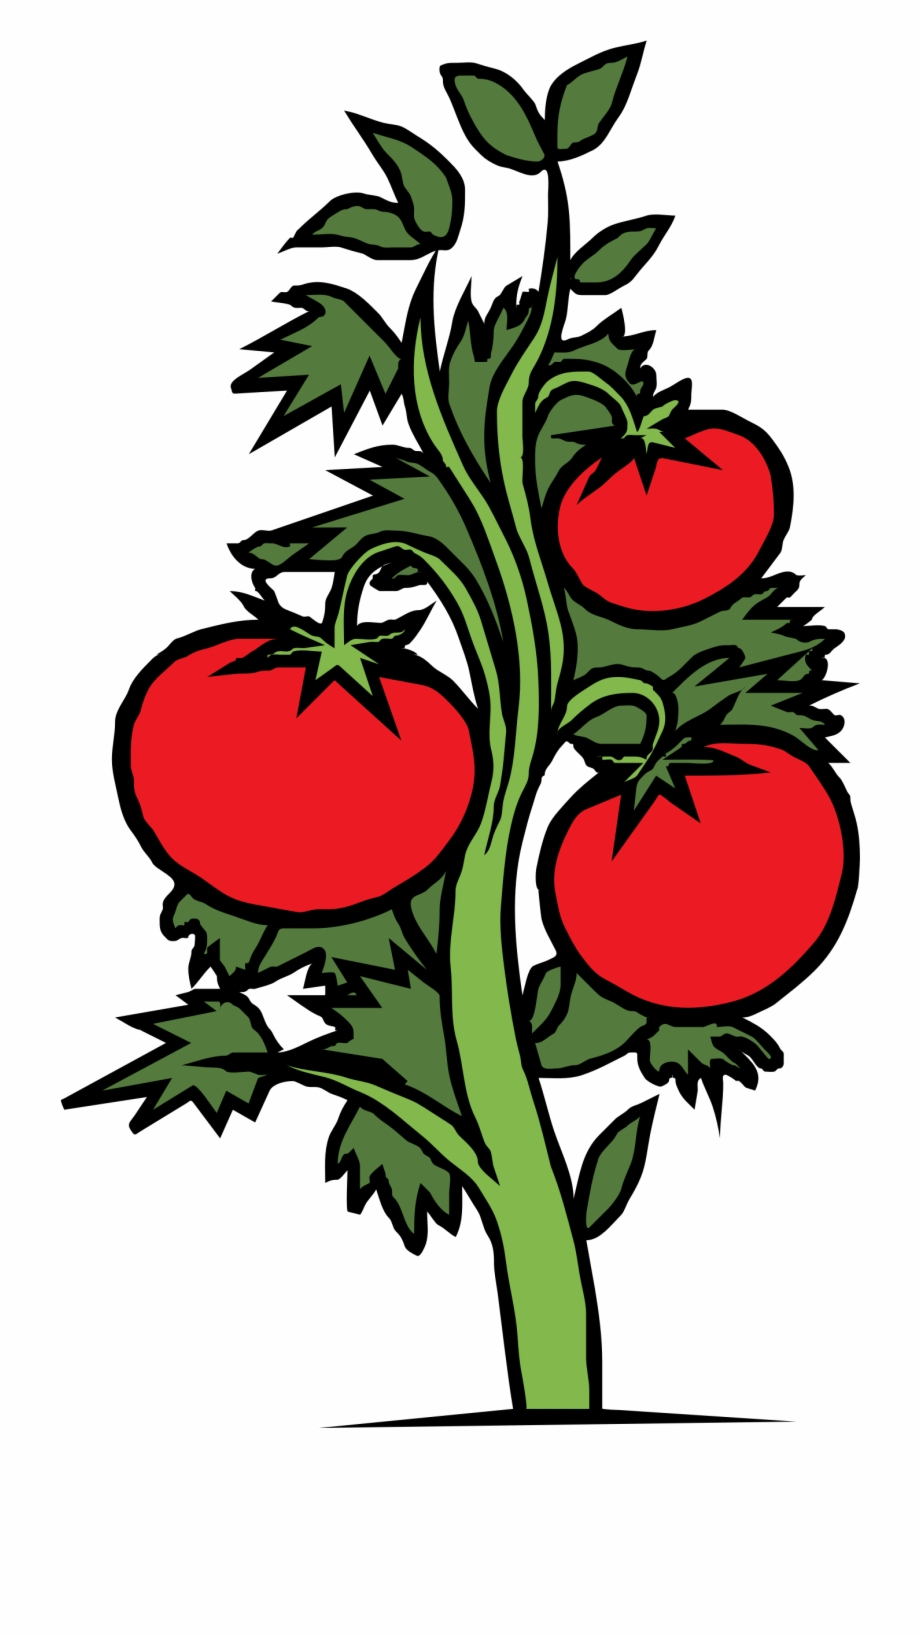 Drawing of plant transparent. Tomatoes clipart tomato stem